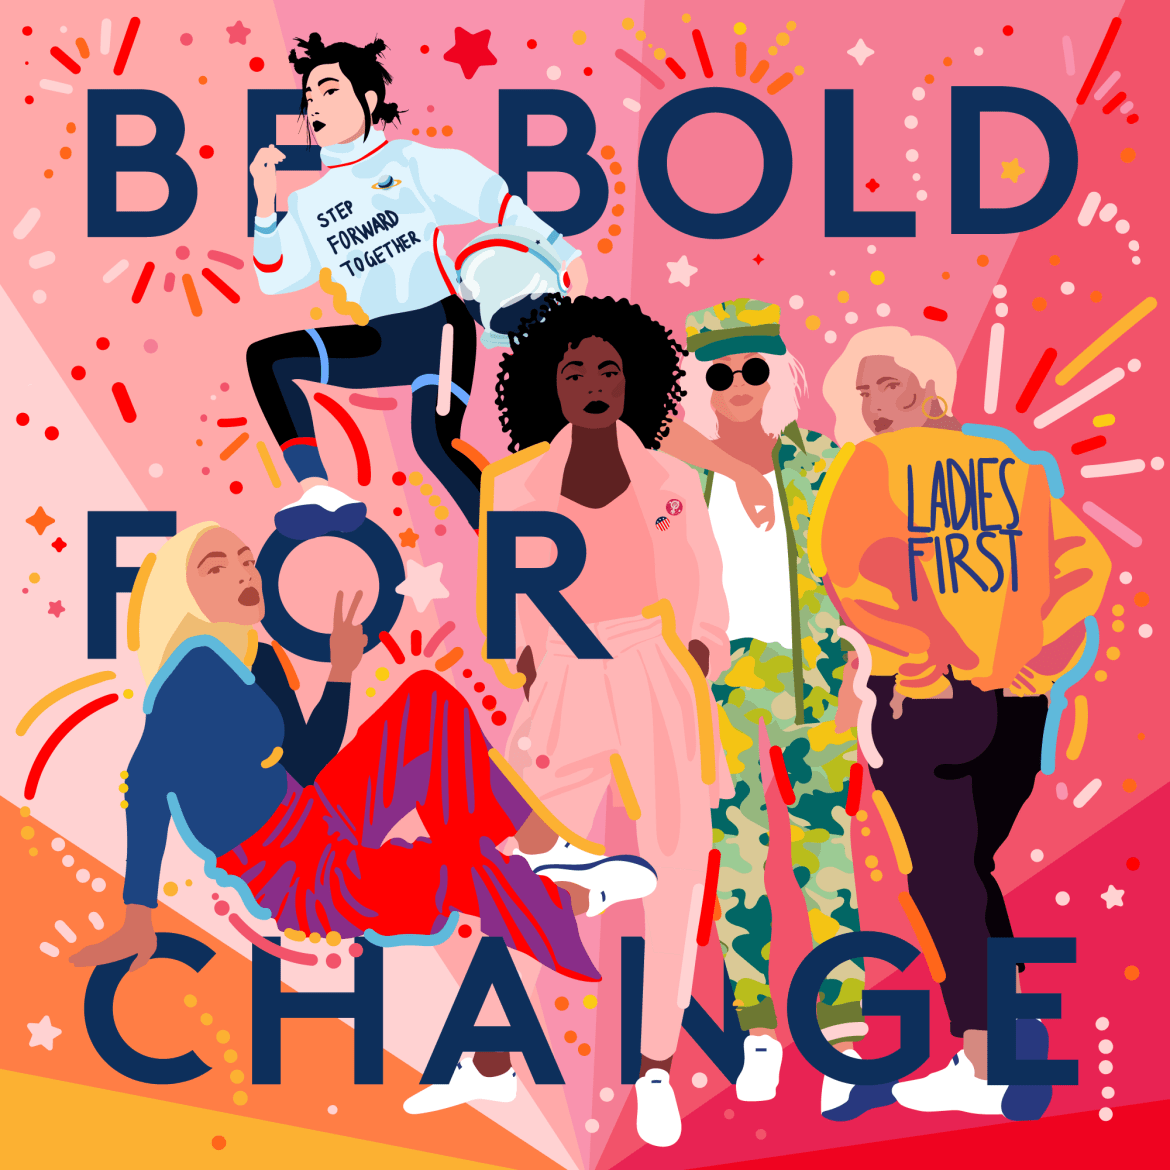 Illustration by Refinery29 senior designer @byisabel to promote Be Bold For Change, an event hosted by Refinery29 to mark International Women's Day